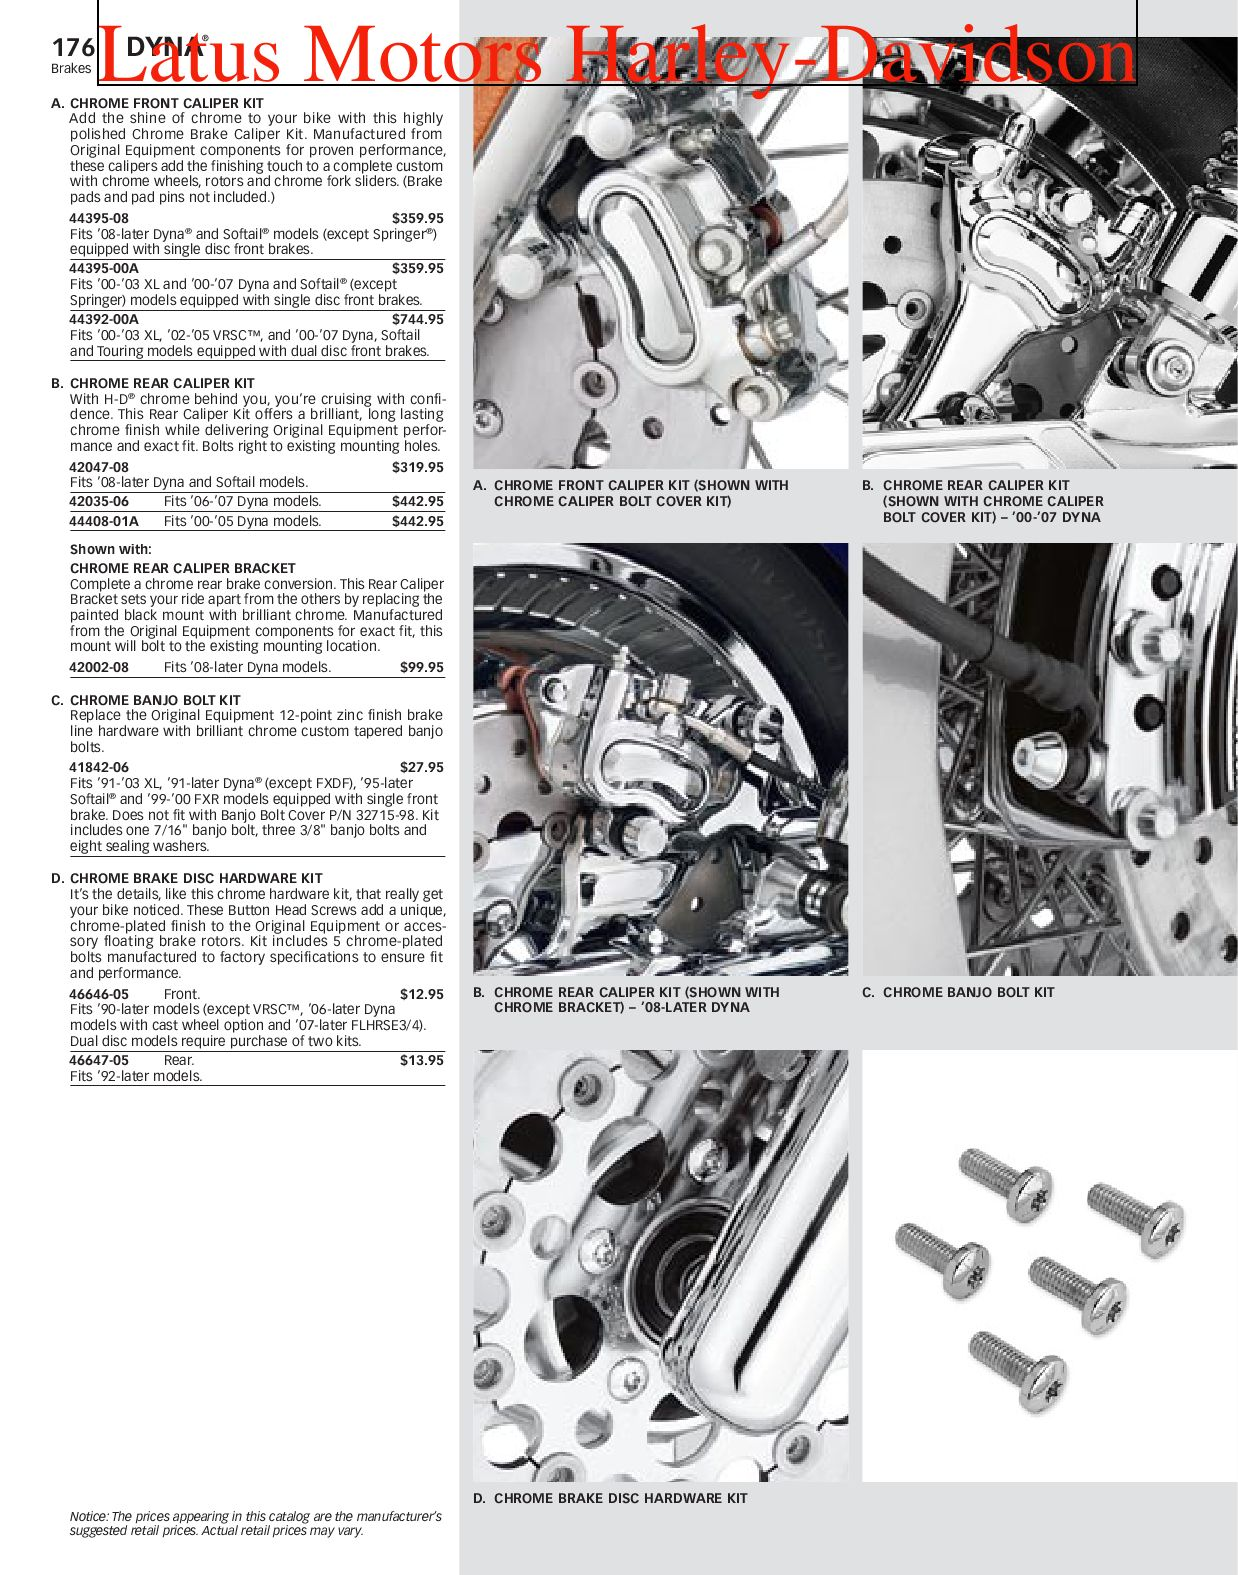 Harley-Davidson Dyna® Parts and Accessories Catalog